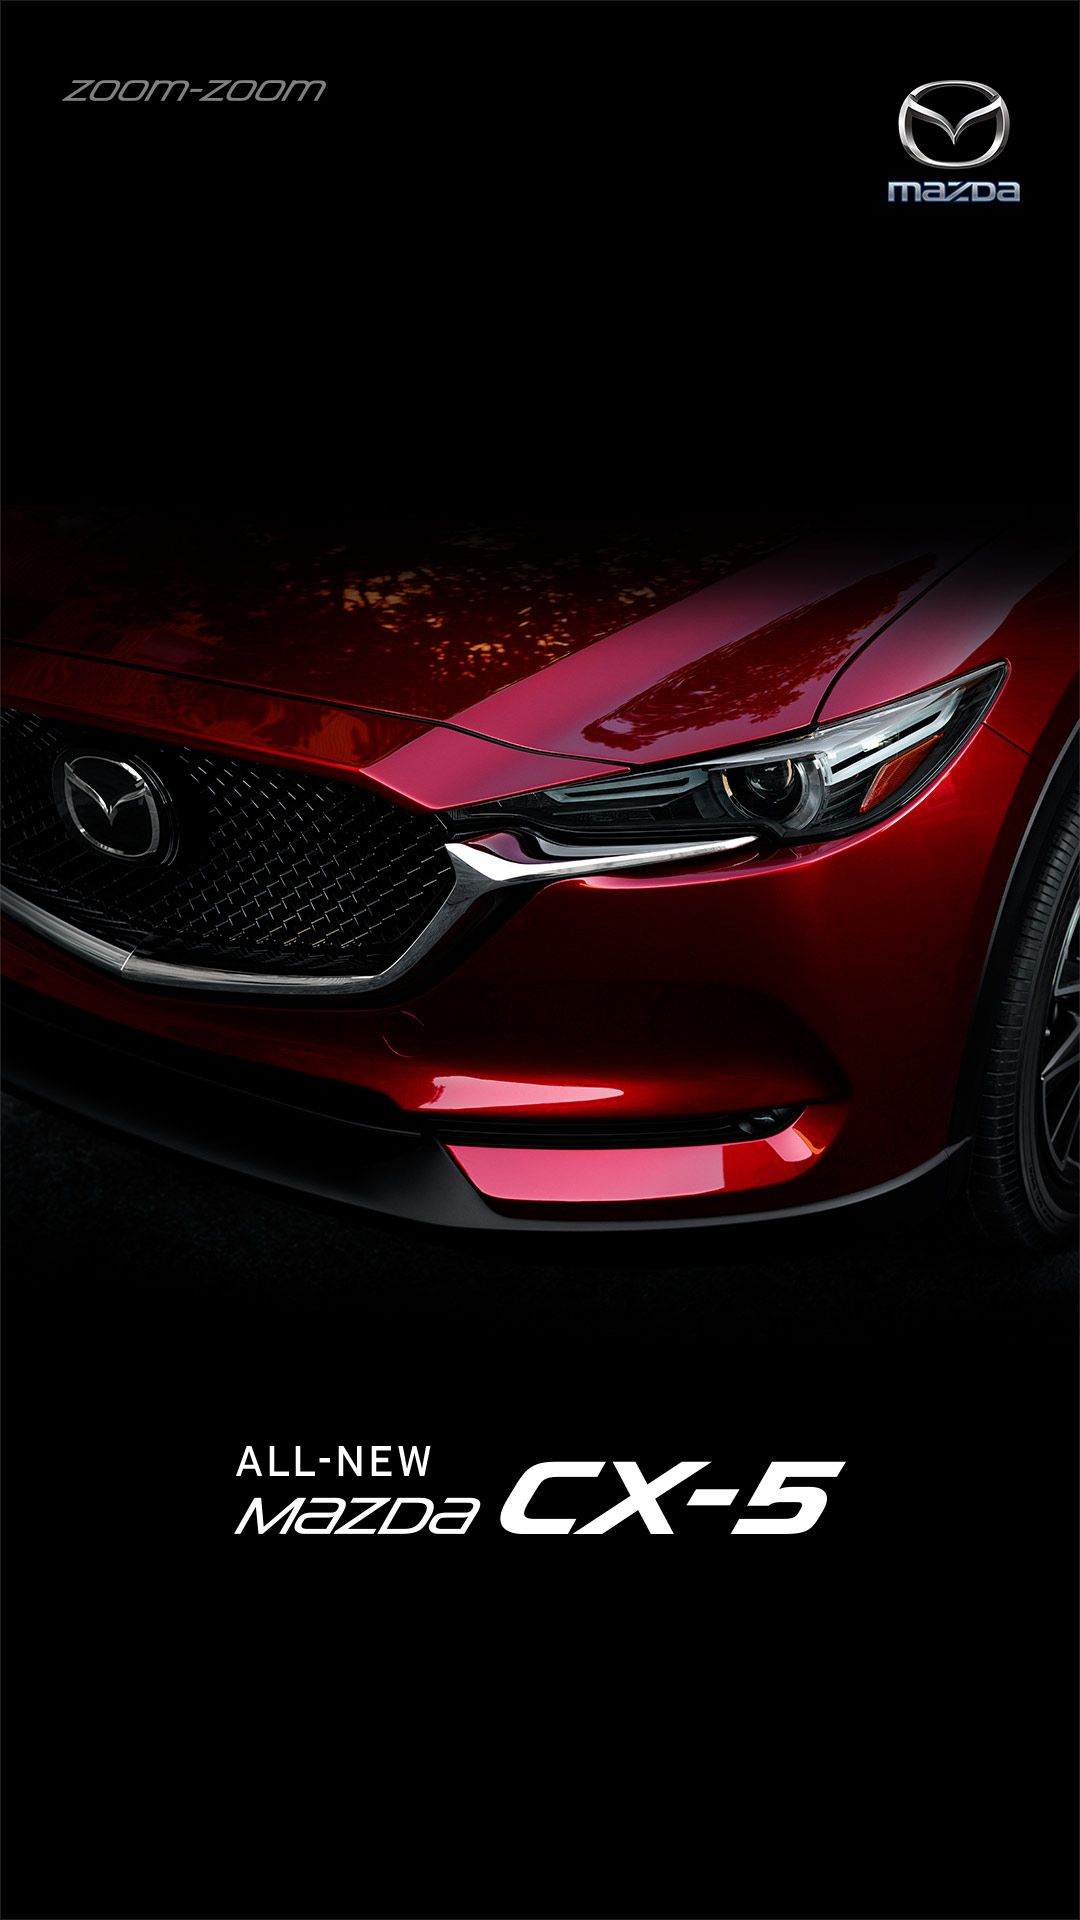 Zoom Zoom Yes To The Cx 5 However Larger Liter Displacement With